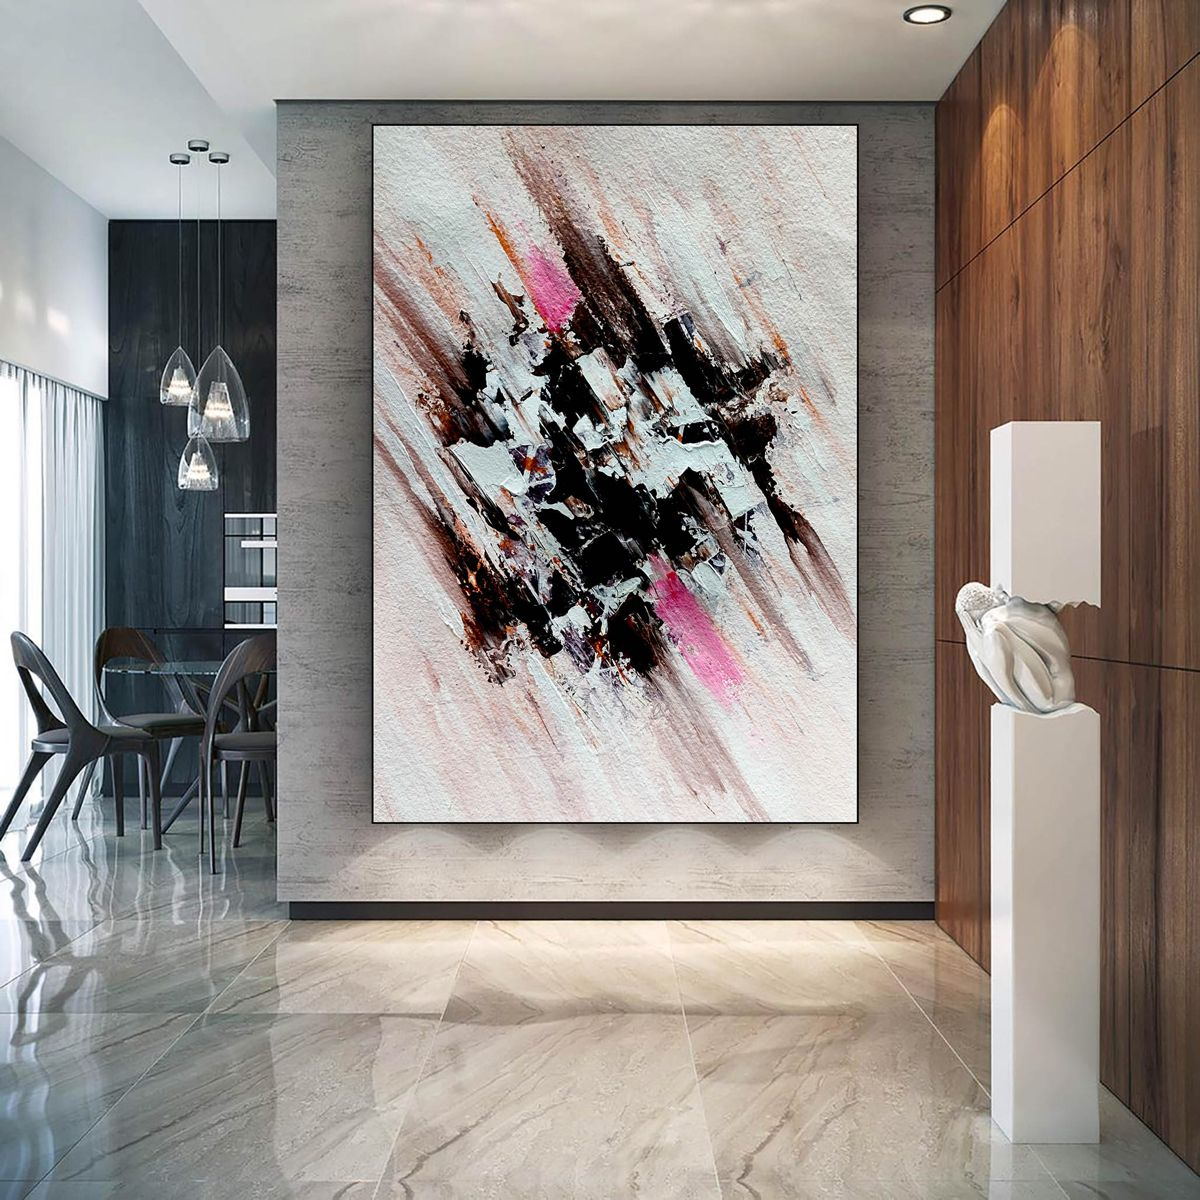 Abstract Painting On Canvas Large Size Painting Canvas Art Modern Decor Handmade Painting In 2021 Abstract Painting Painting Abstract Art Painting